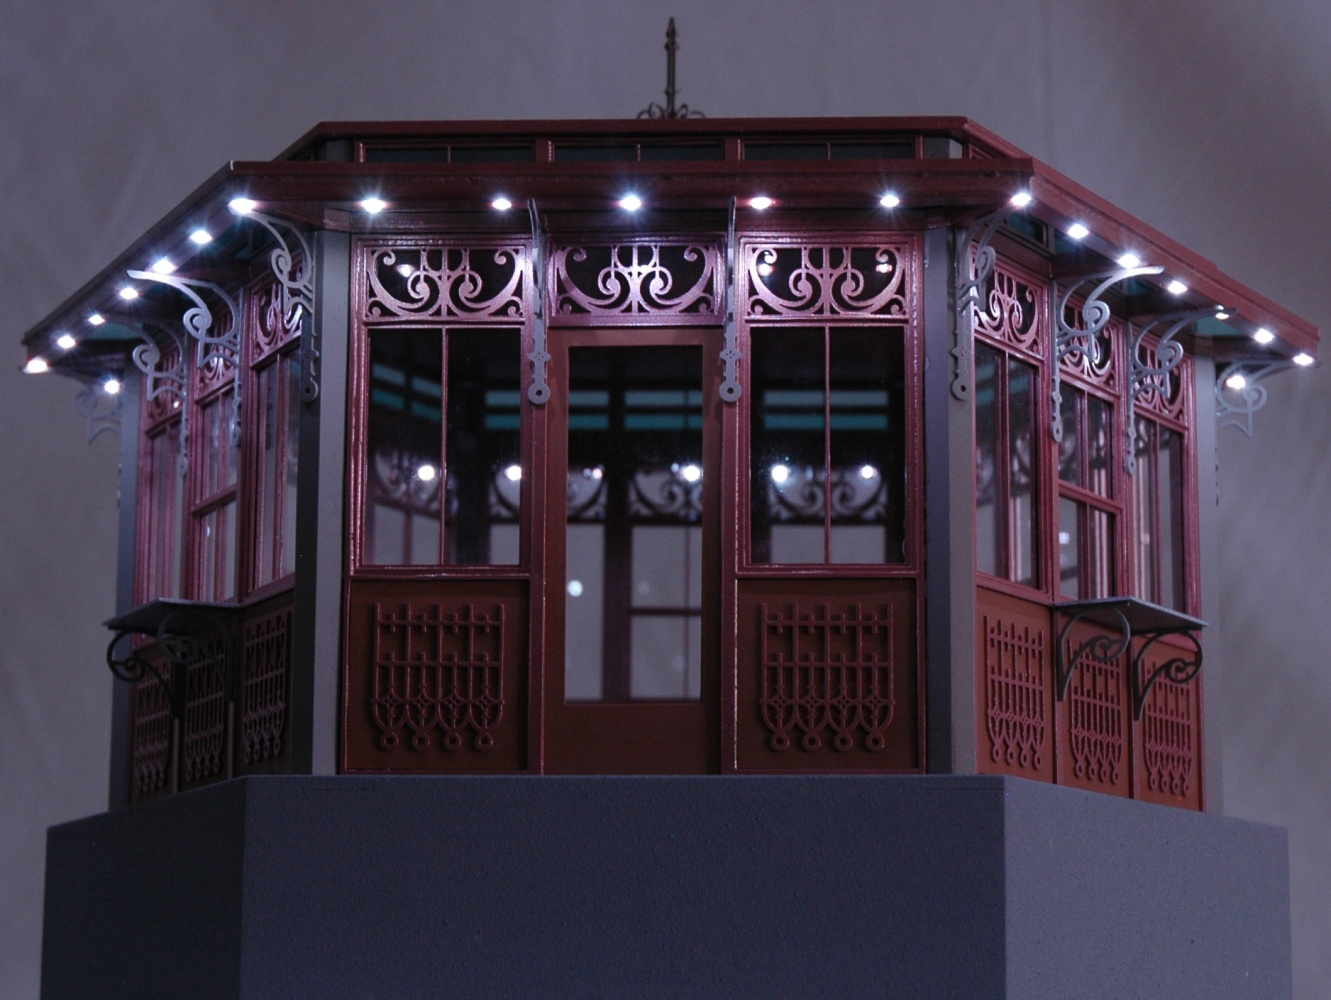 Full Color Trade Show Display Model with LED Lighting